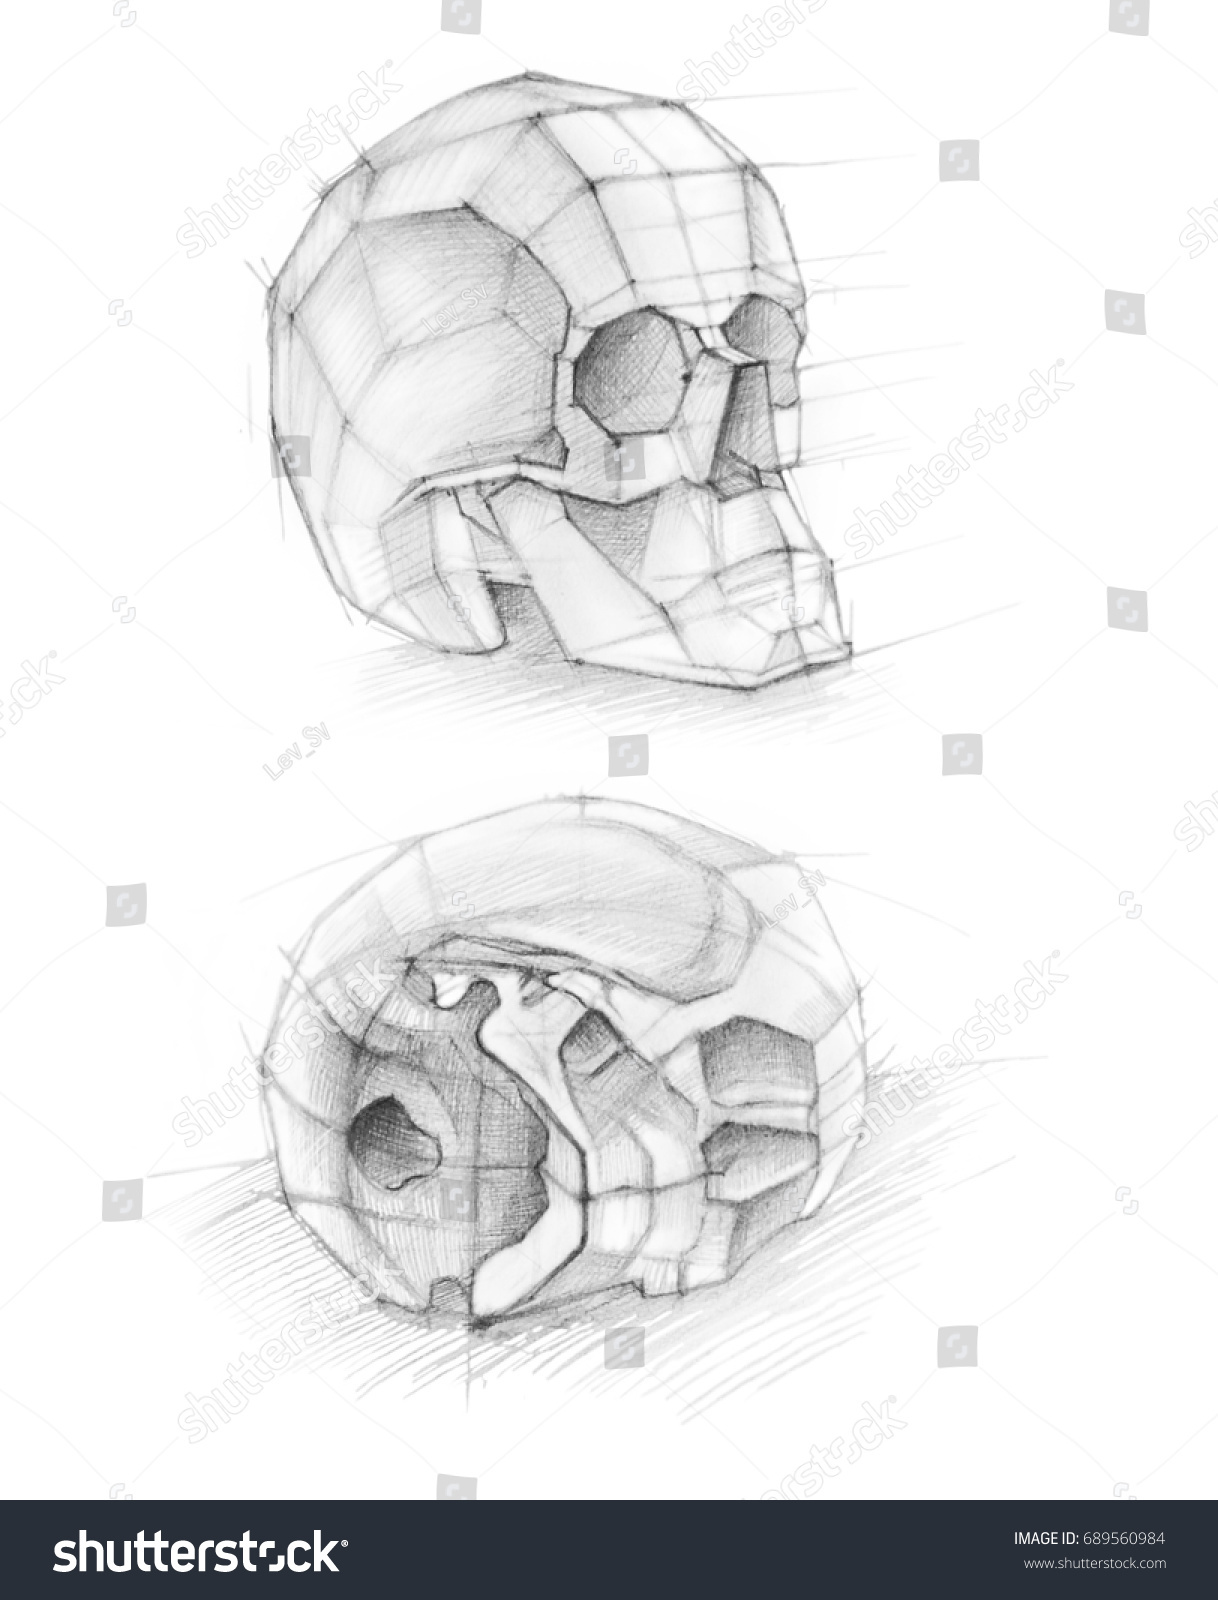 Sketch Soft Pencil Sketch Human Anatomy Stock Illustration 689560984 ...